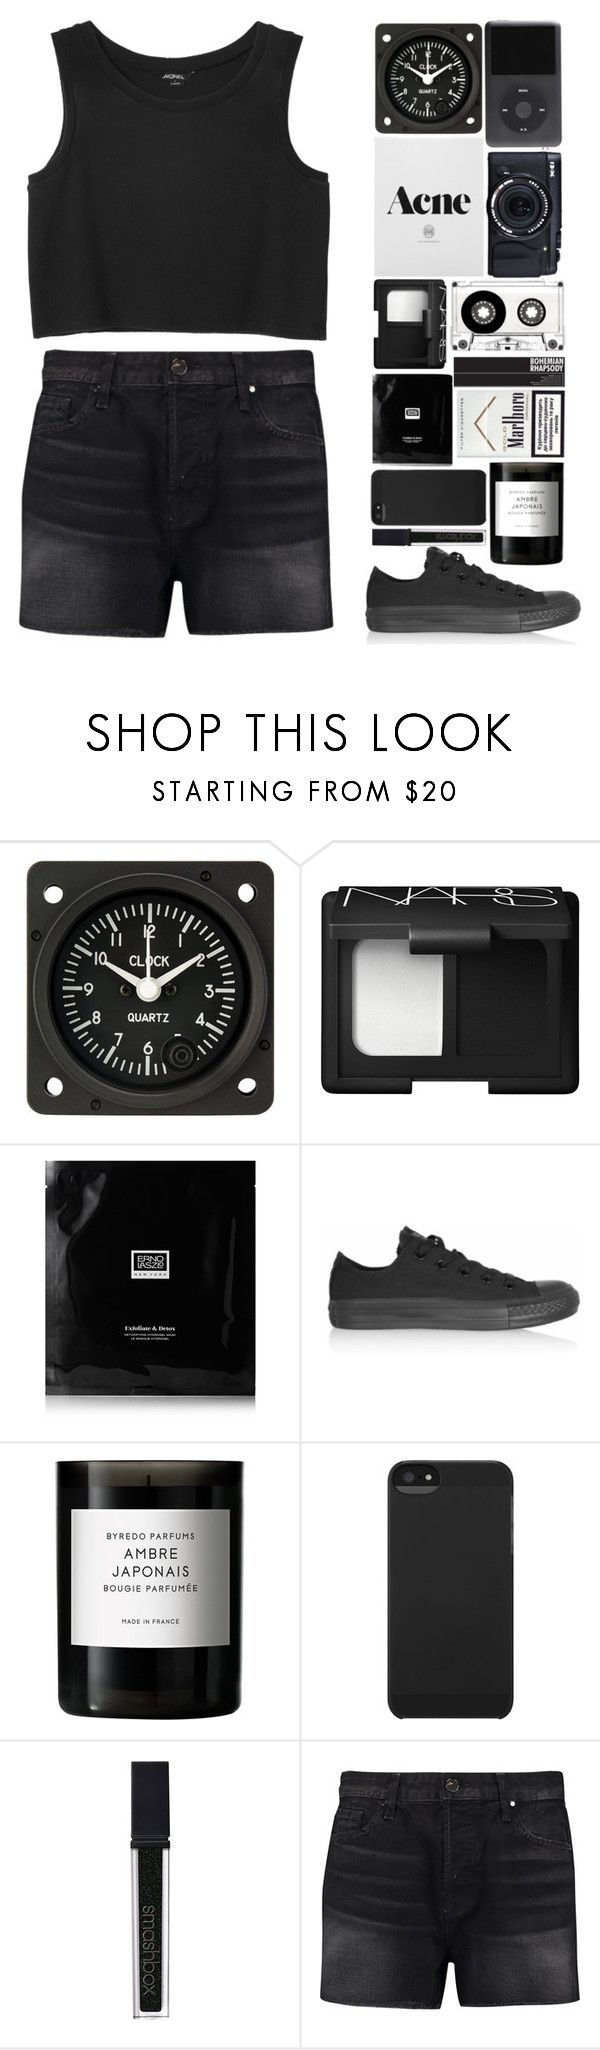 """""""In her eyes there's no lies,there's no question, she's not in a disguise"""" by onedirectiondress ❤ liked on Polyvore featuring Fujifilm, NARS Cosmetics, Erno Laszlo, Converse, Byredo, Incase, Smashbox, J Brand and Monki"""